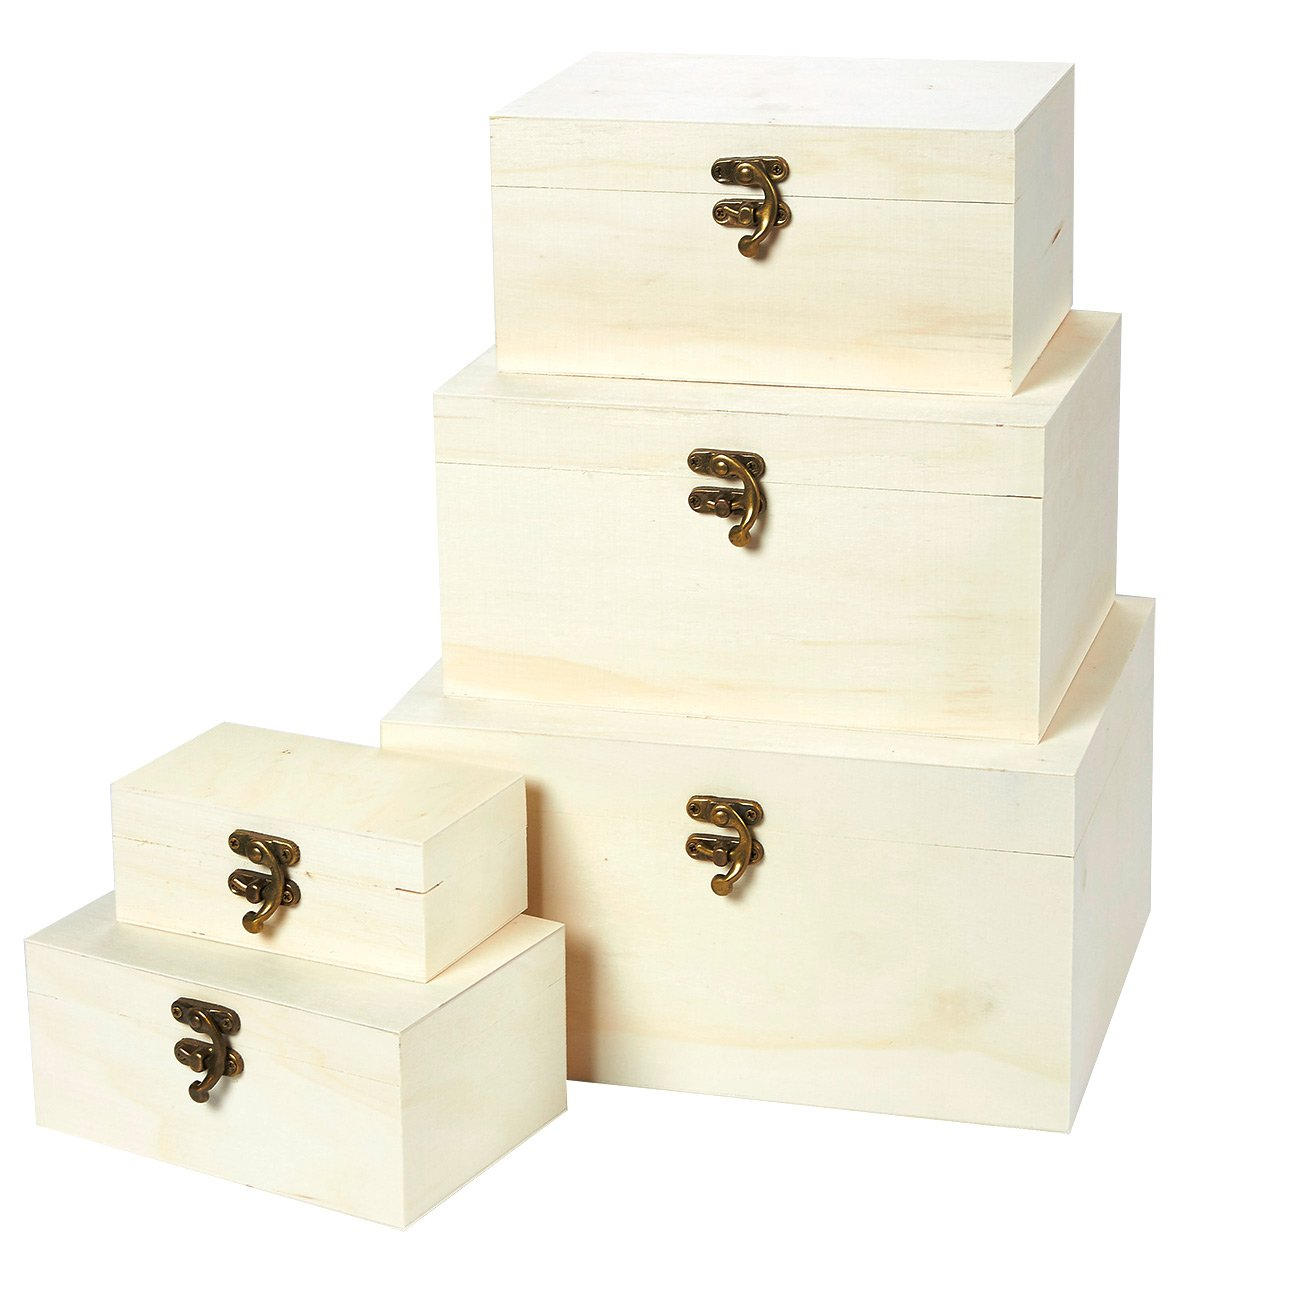 Juvale Wooden Boxes - 5-Piece Hinged-Lid Nesting Boxes for Arts, Crafts, Hobbies and Home Storage, Unfinished Wood, Natural Wood Color